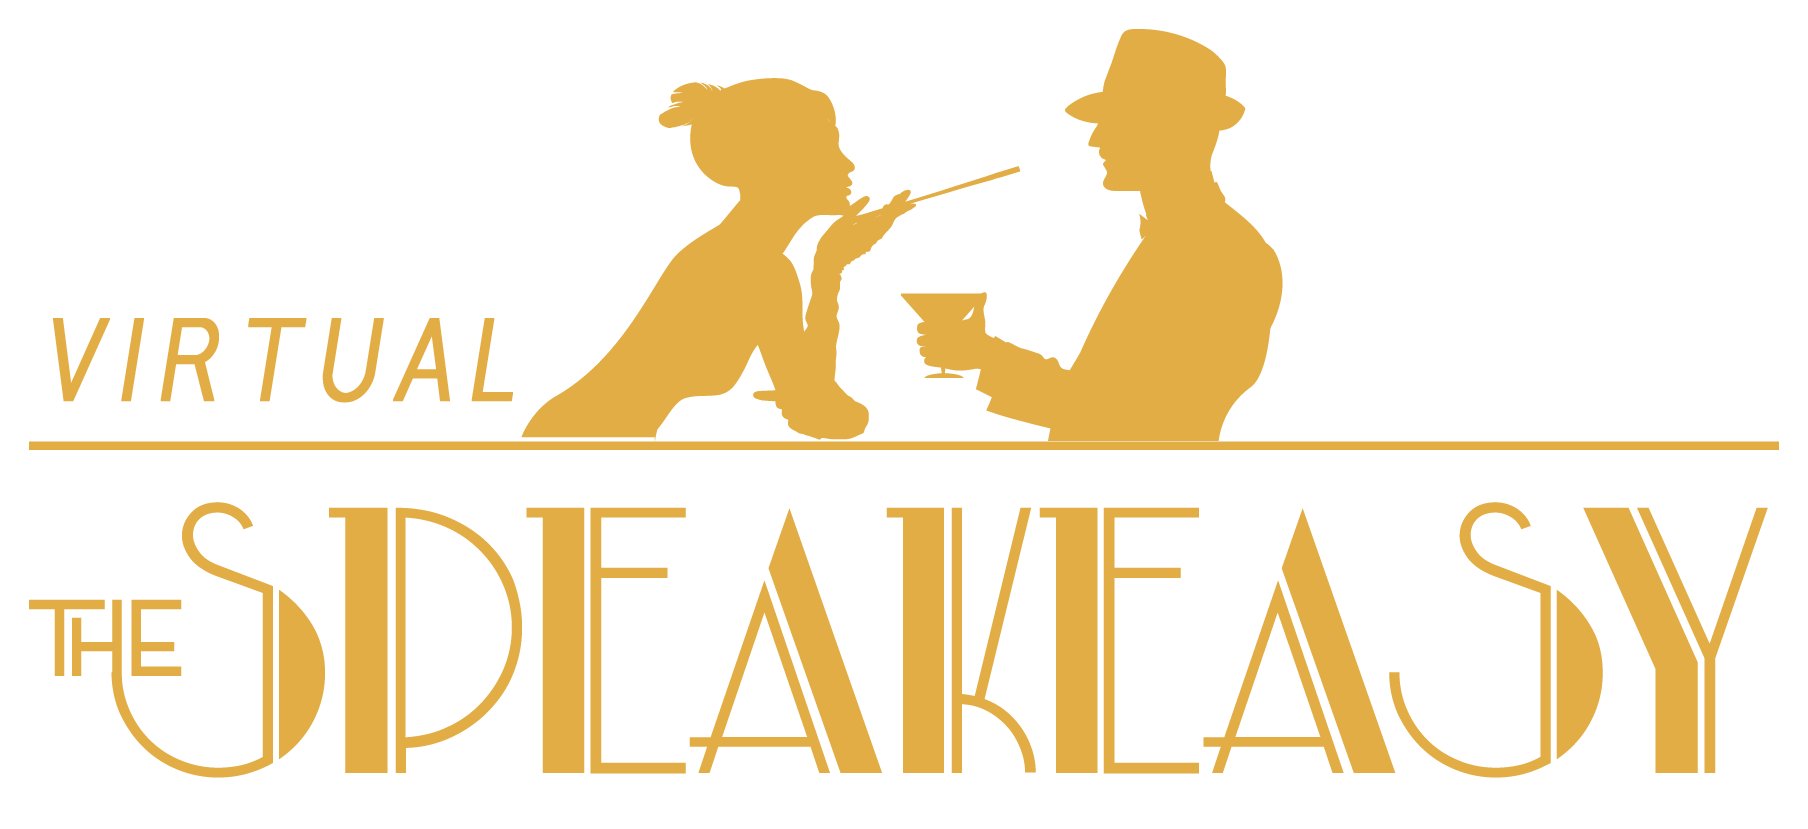 The Virtual Speakeasy